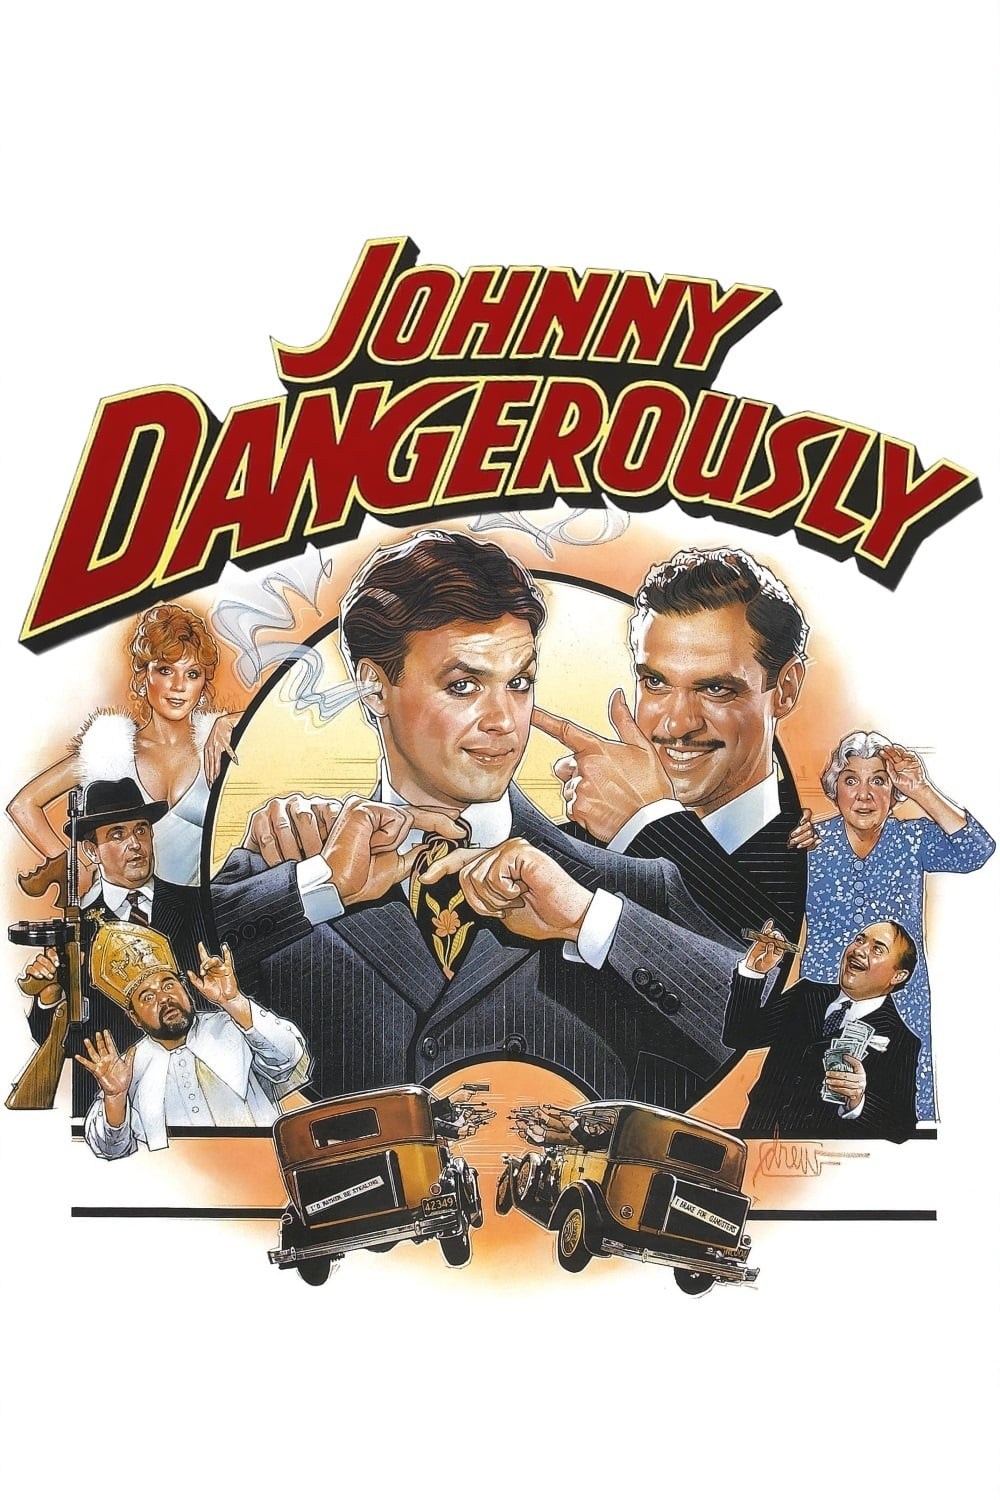 Image Johnny Dangerously